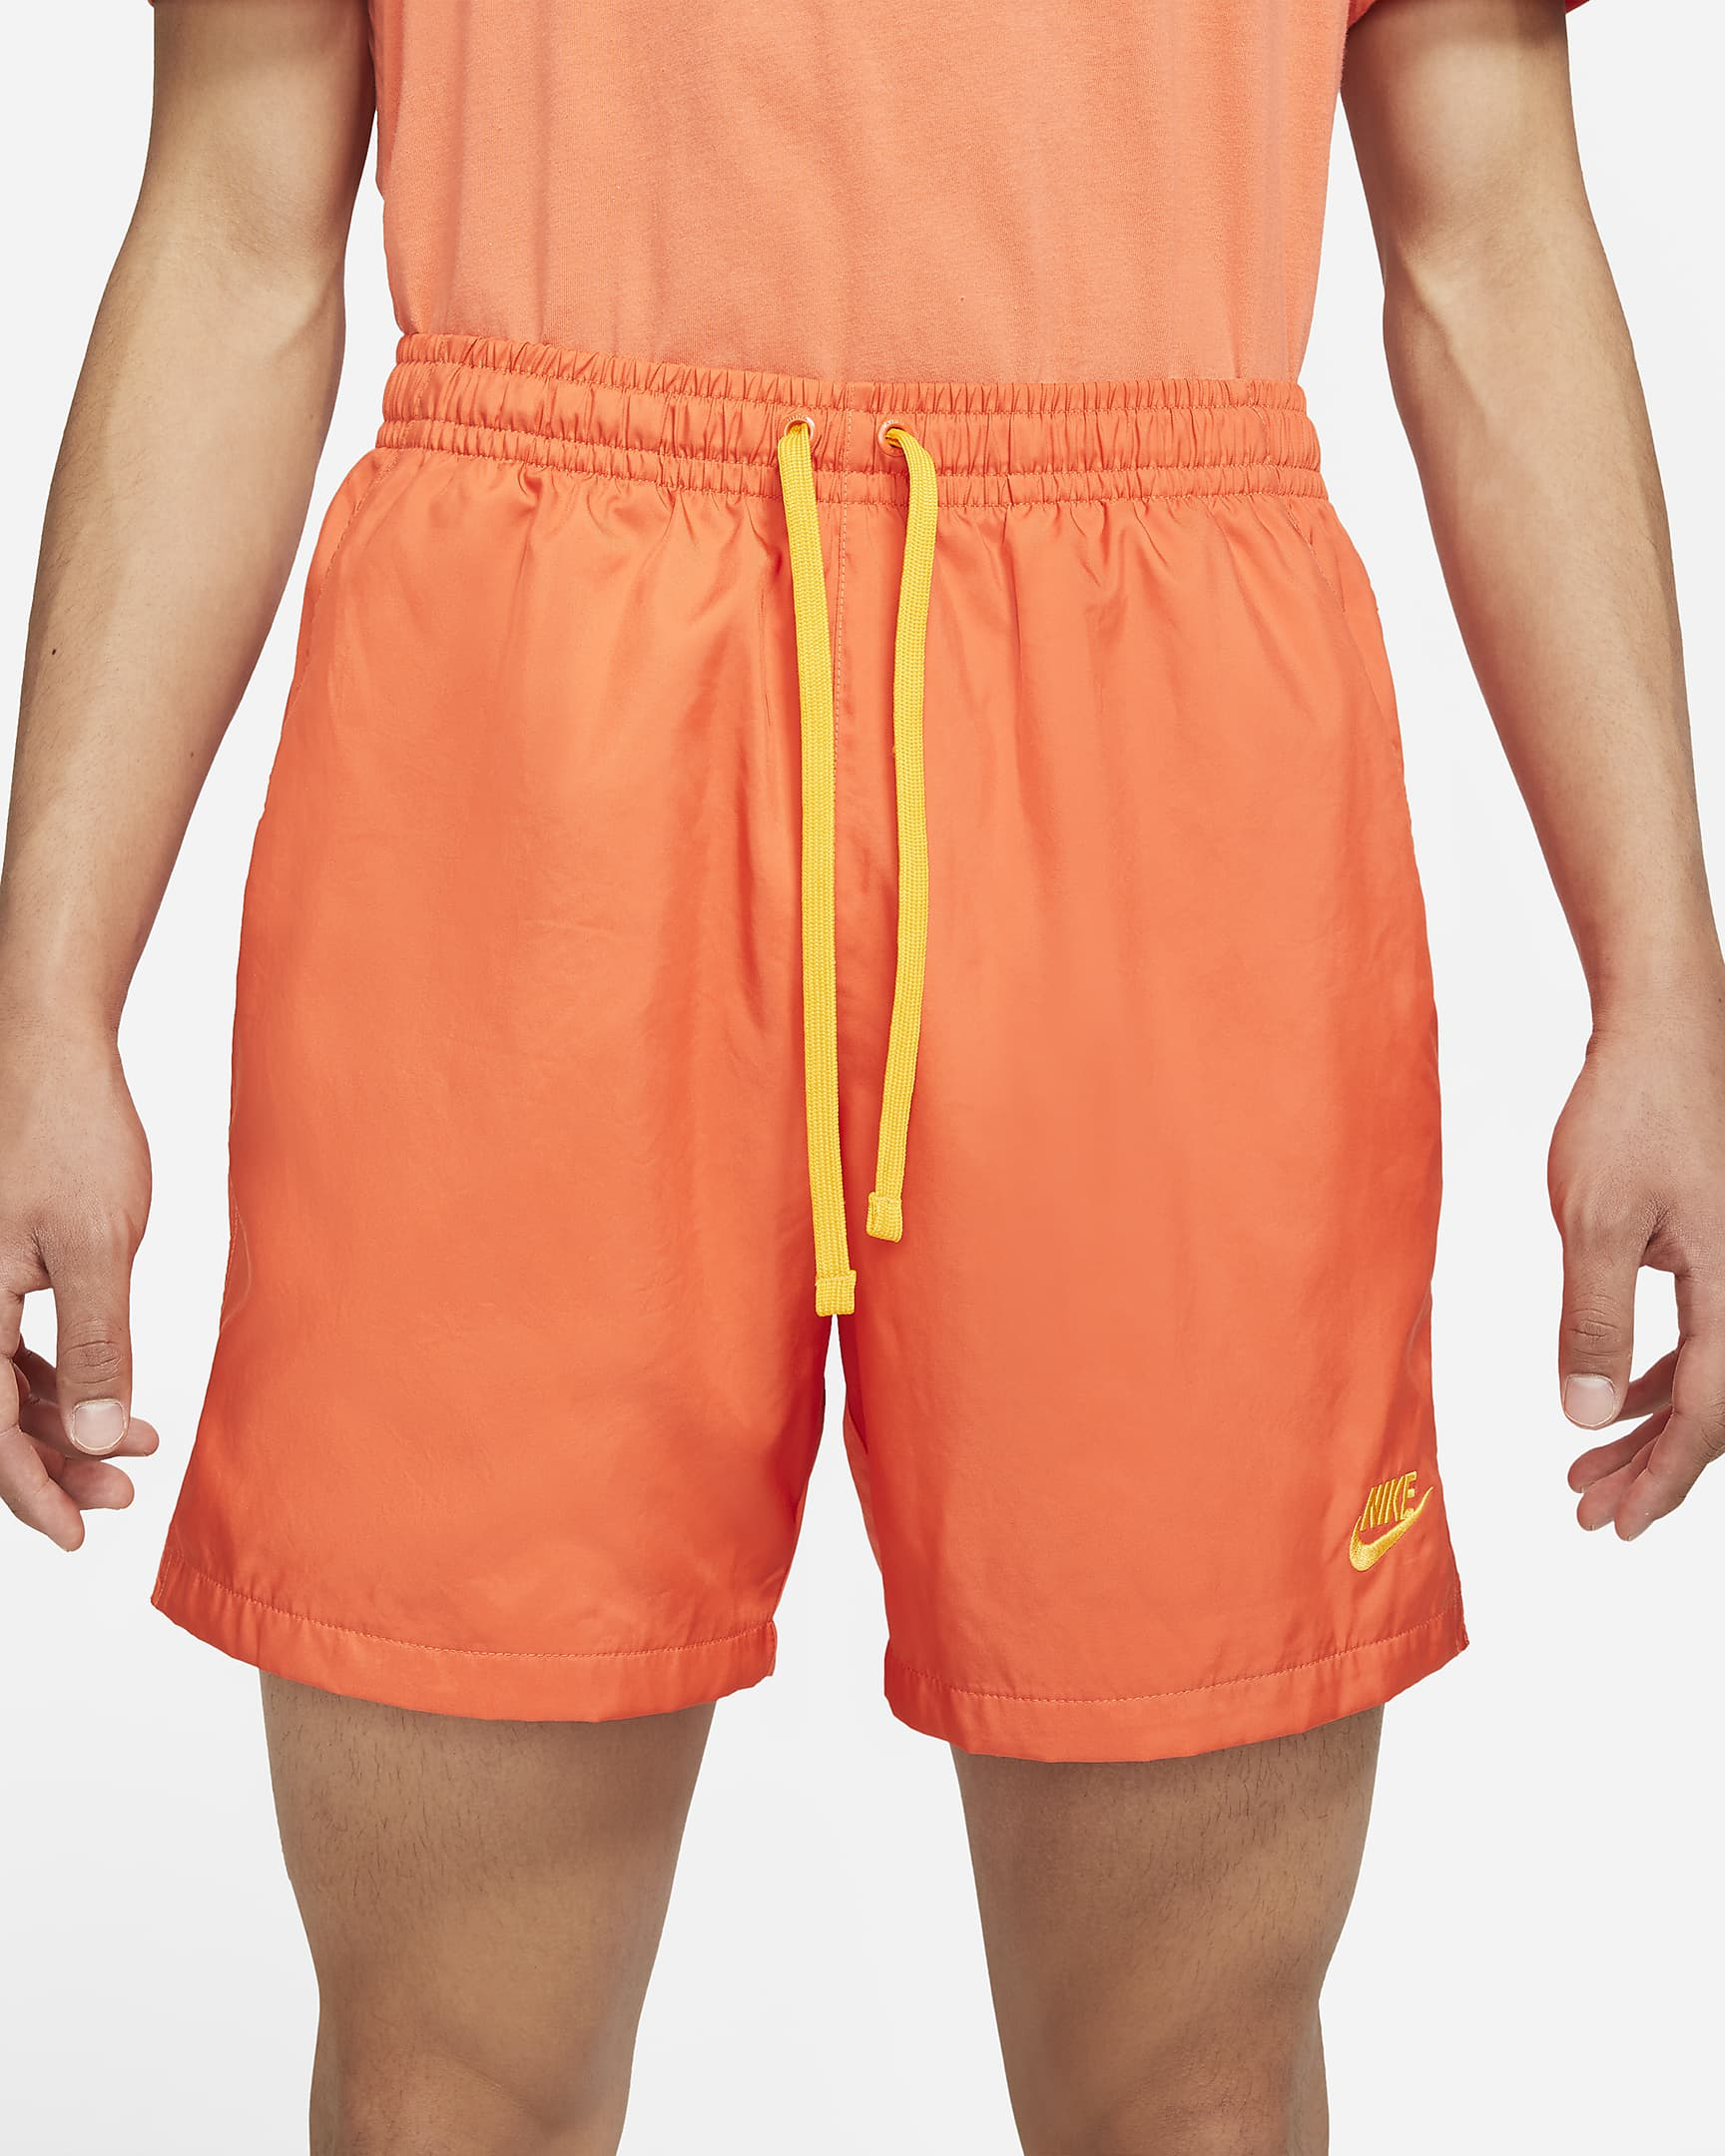 sportswear-mens-woven-shorts-VFft3H.png